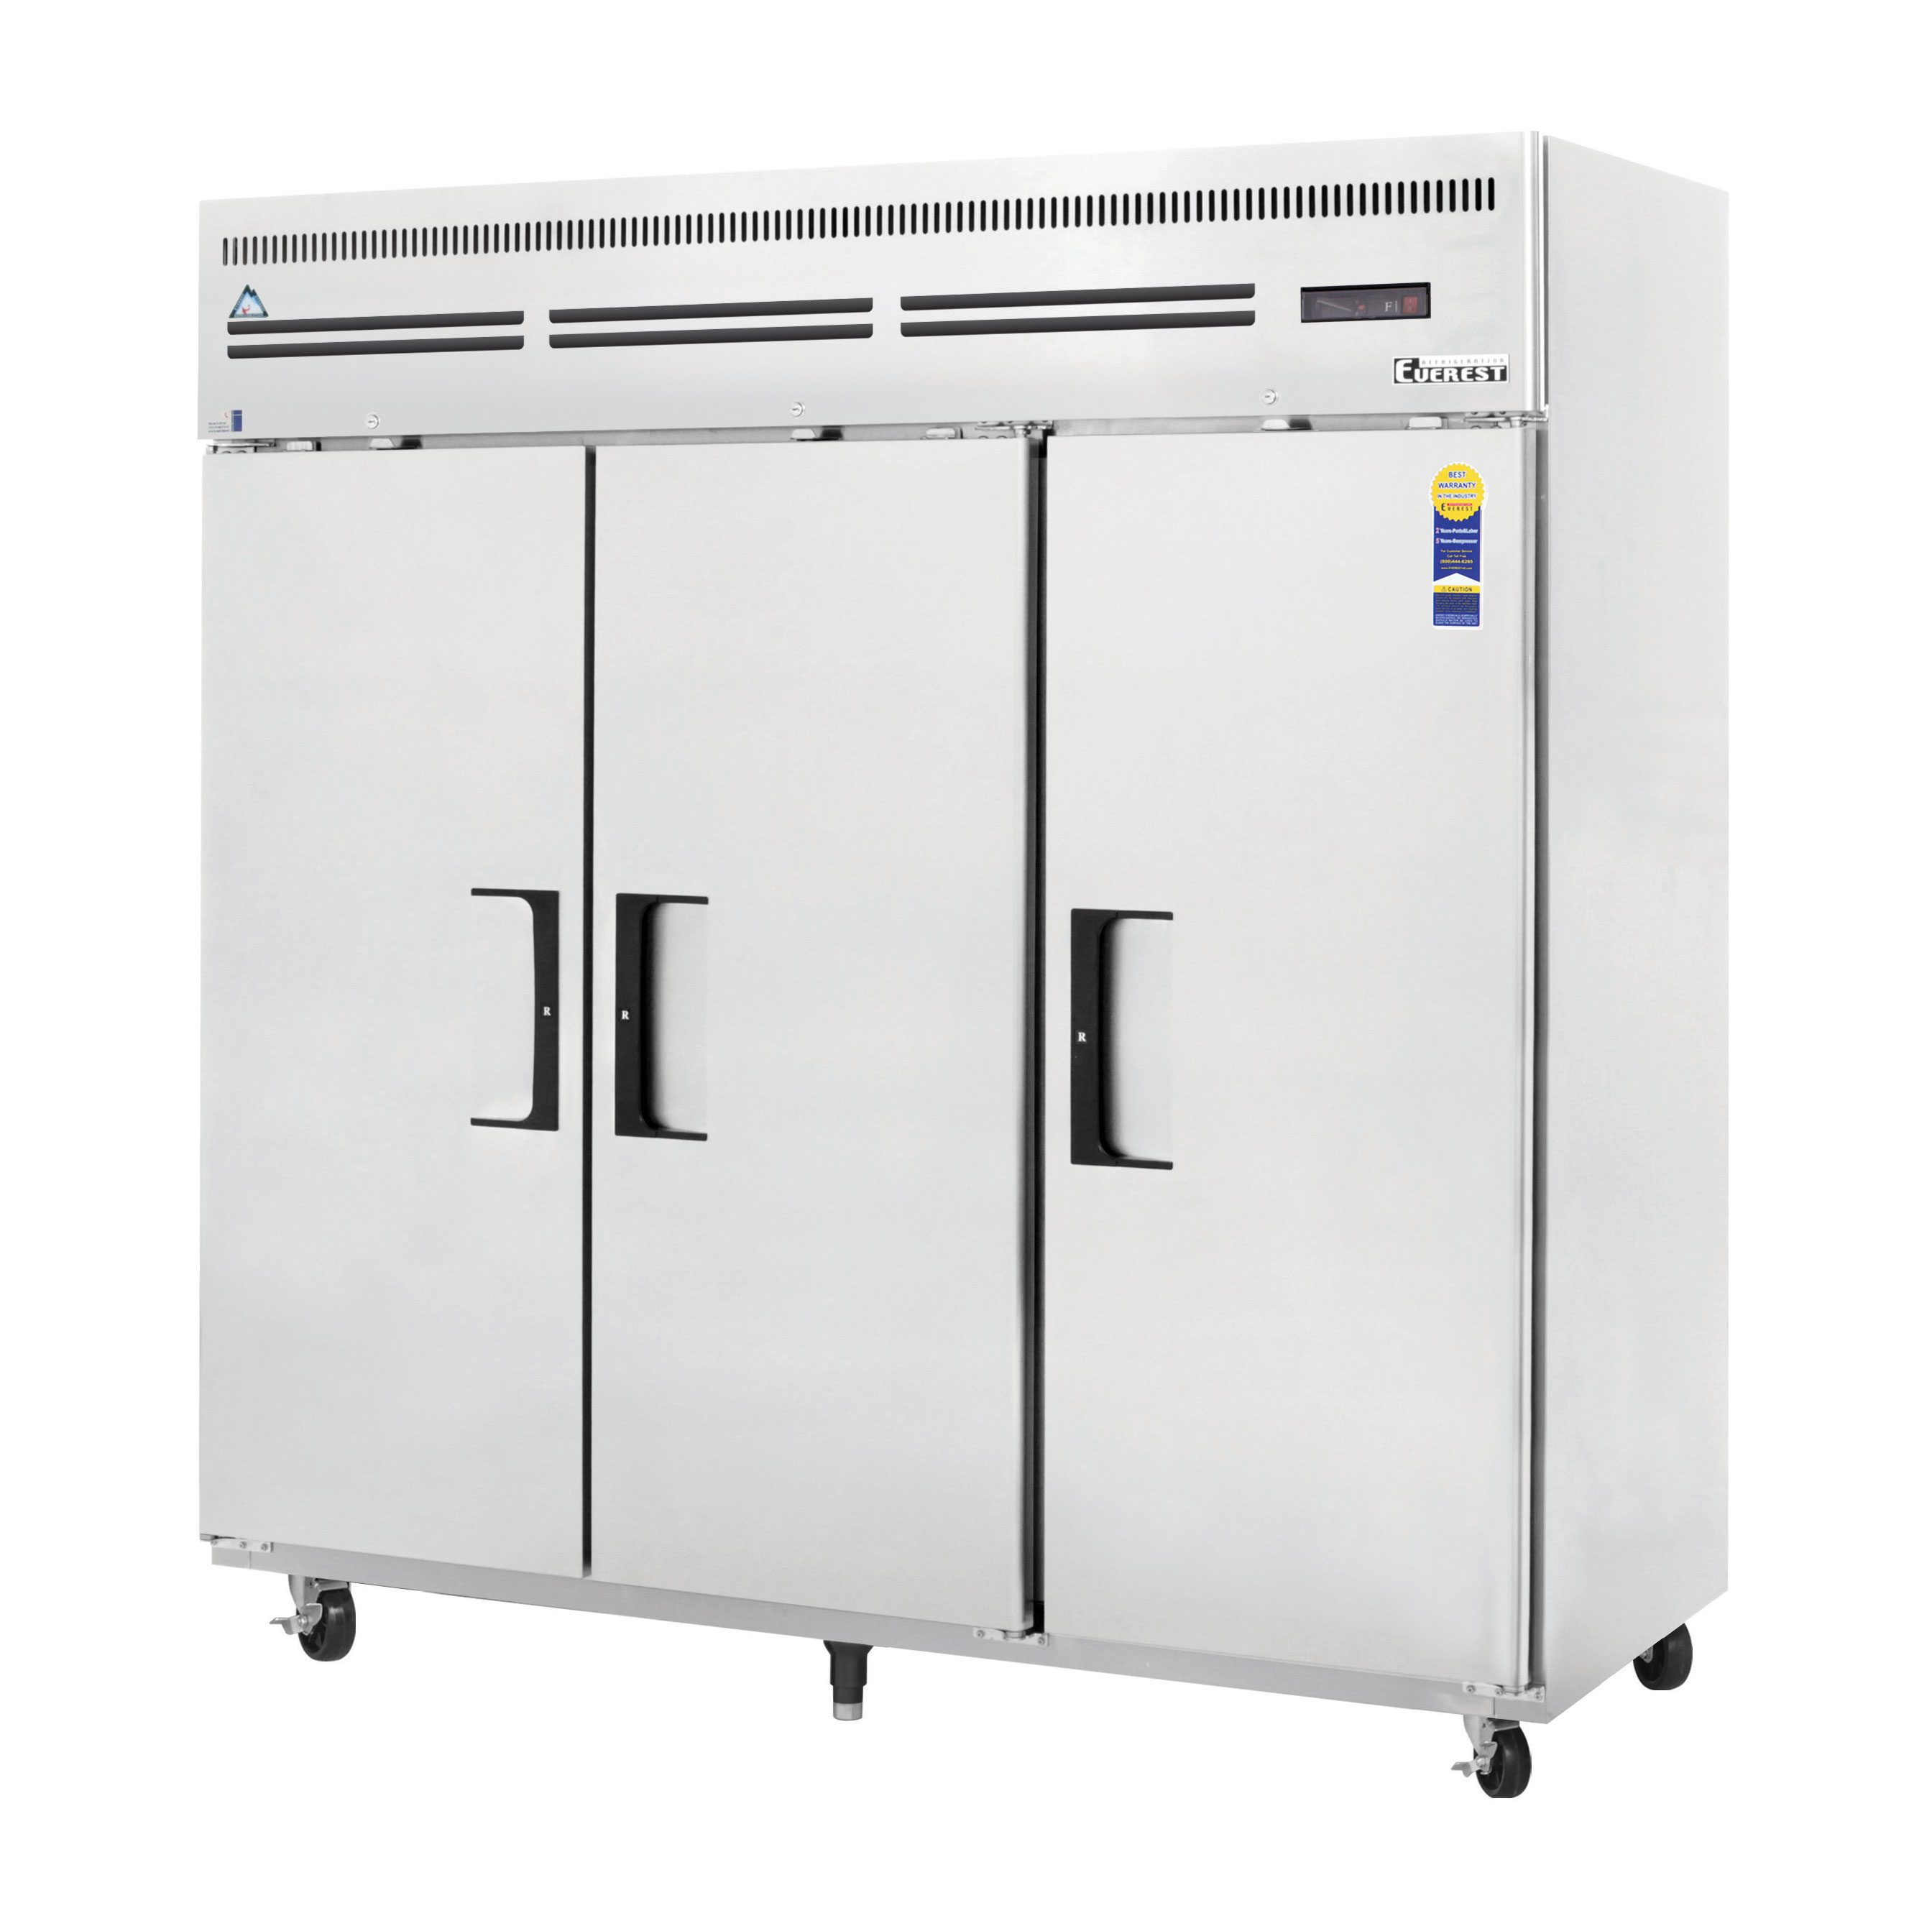 ESF3 Everest Refrigeration freezer, reach-in